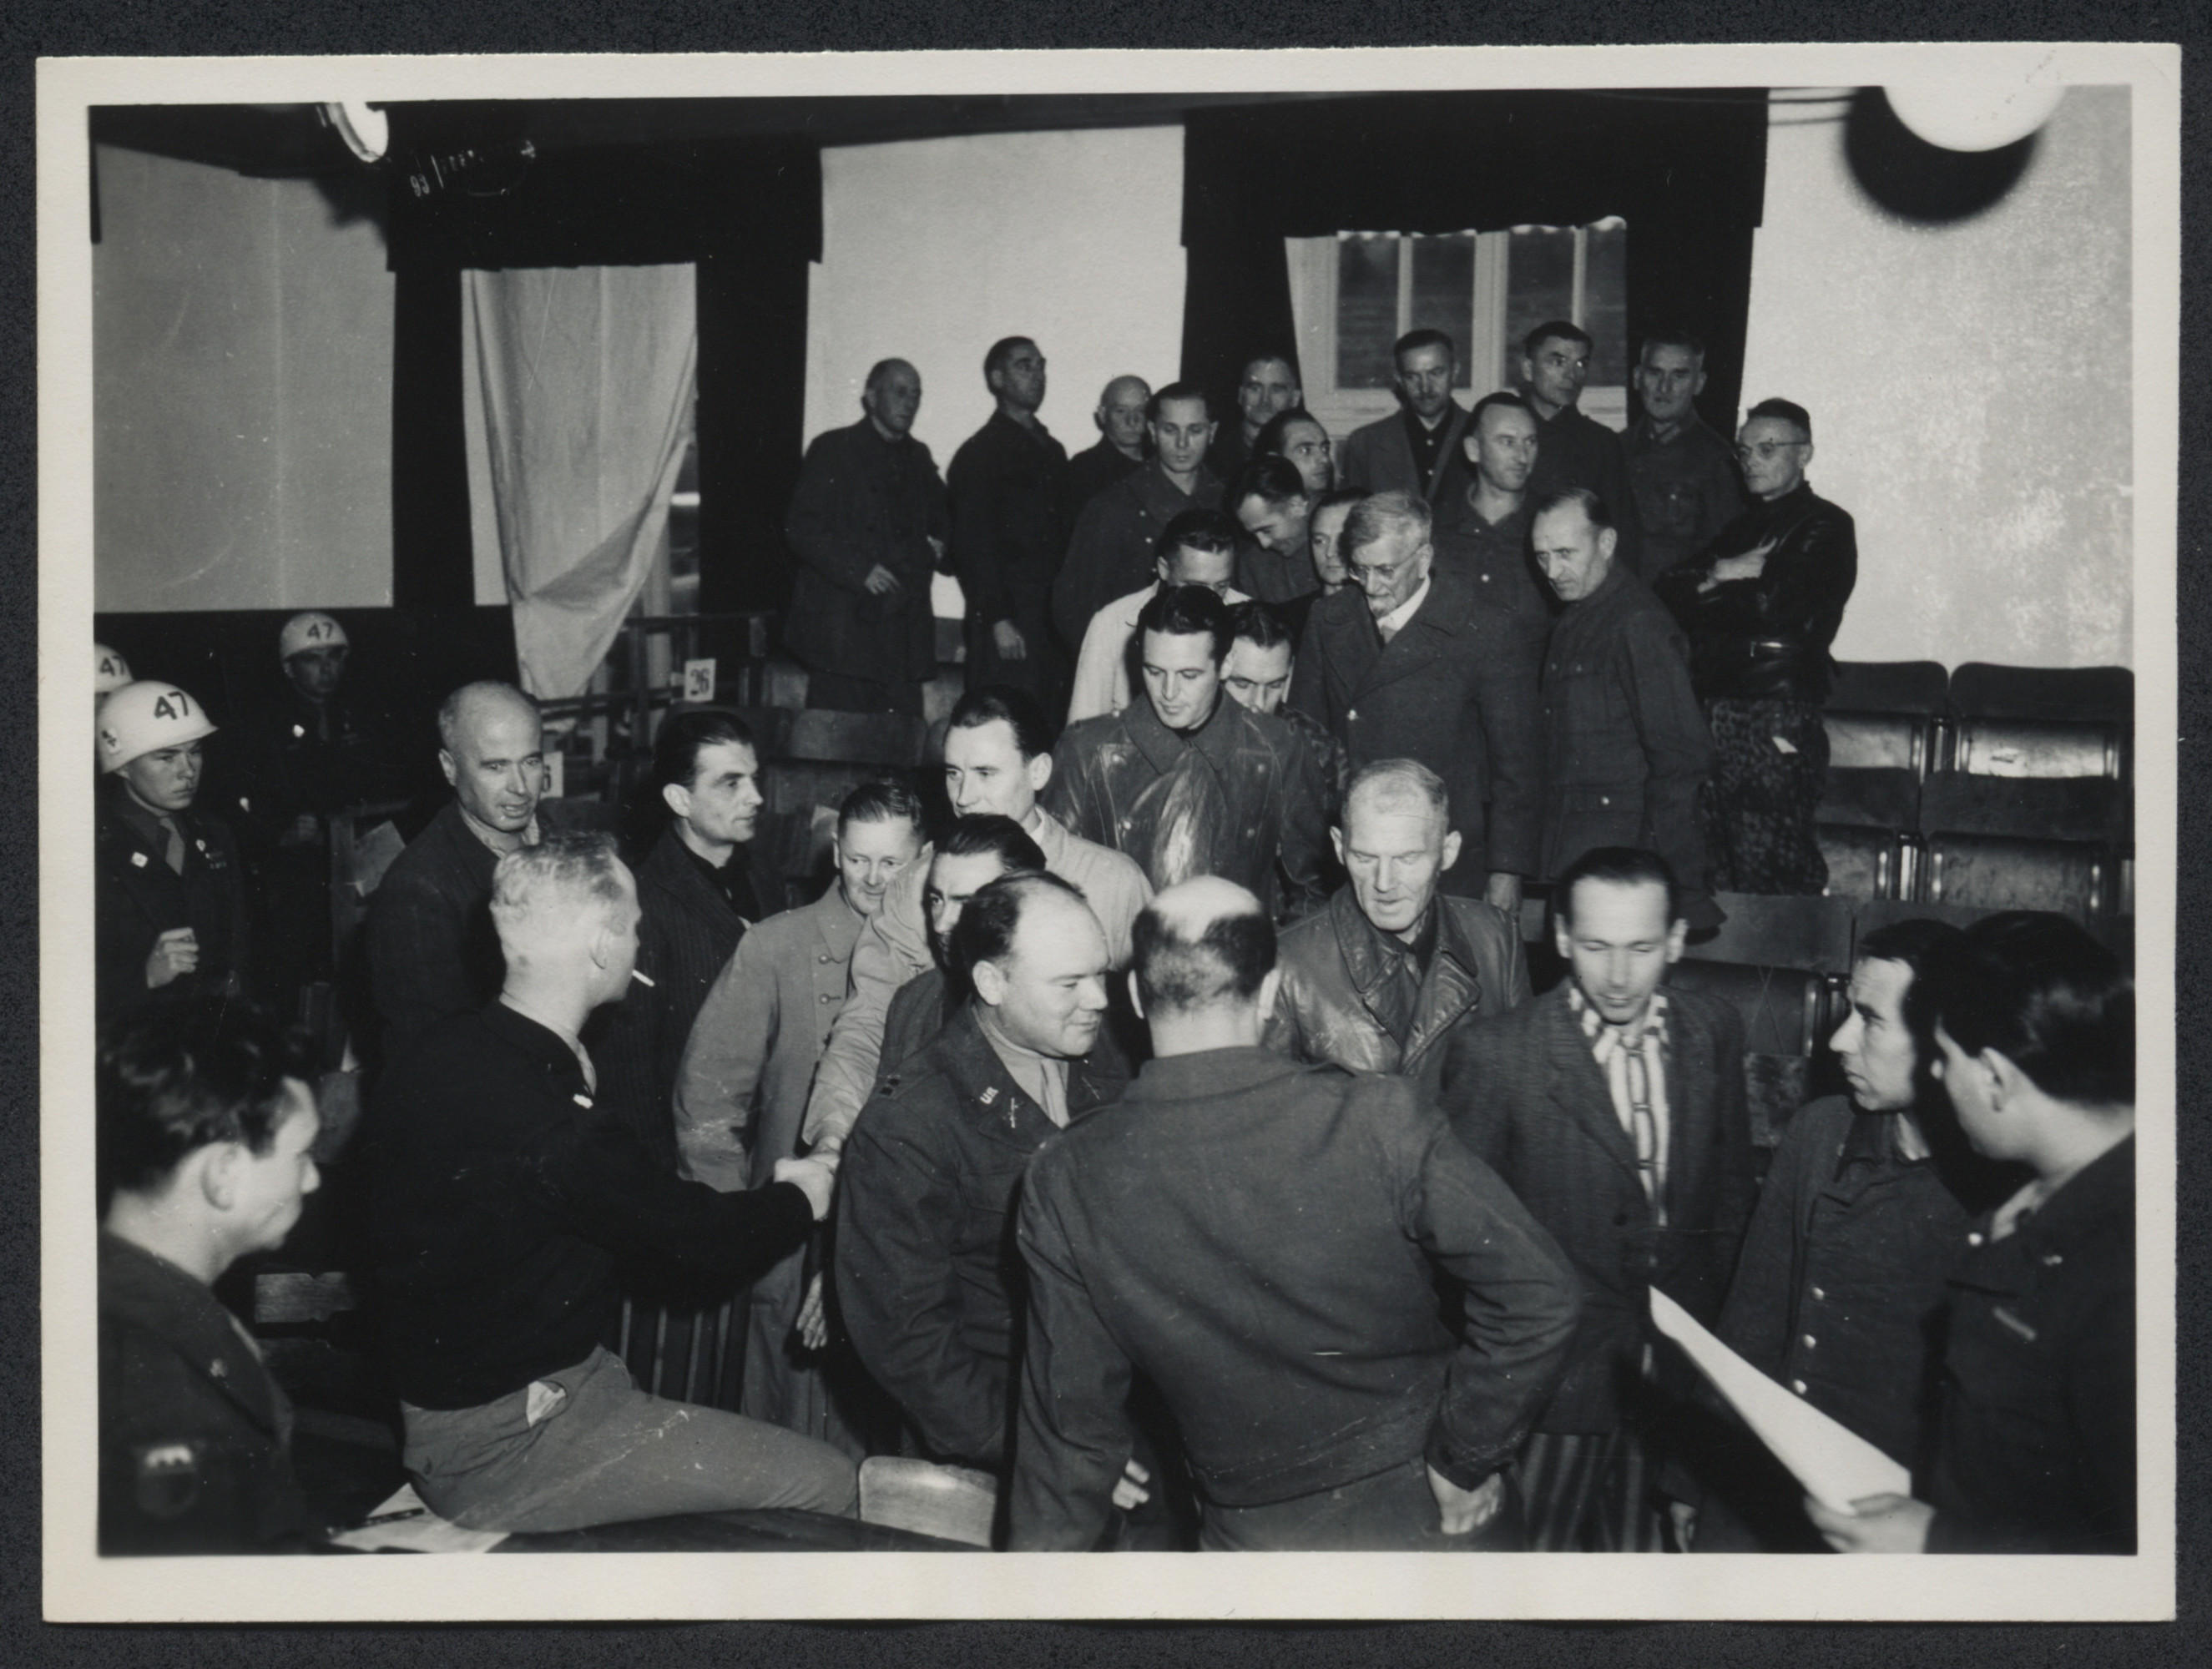 Proceedings of the Dachau concentration camp trial.  Among those pictured are defendants Dr. Klaus Schilling (center right of photograph, wearing glasses), and Emil Erwin Mahl (wearing prisoner uniform under suit jacket).